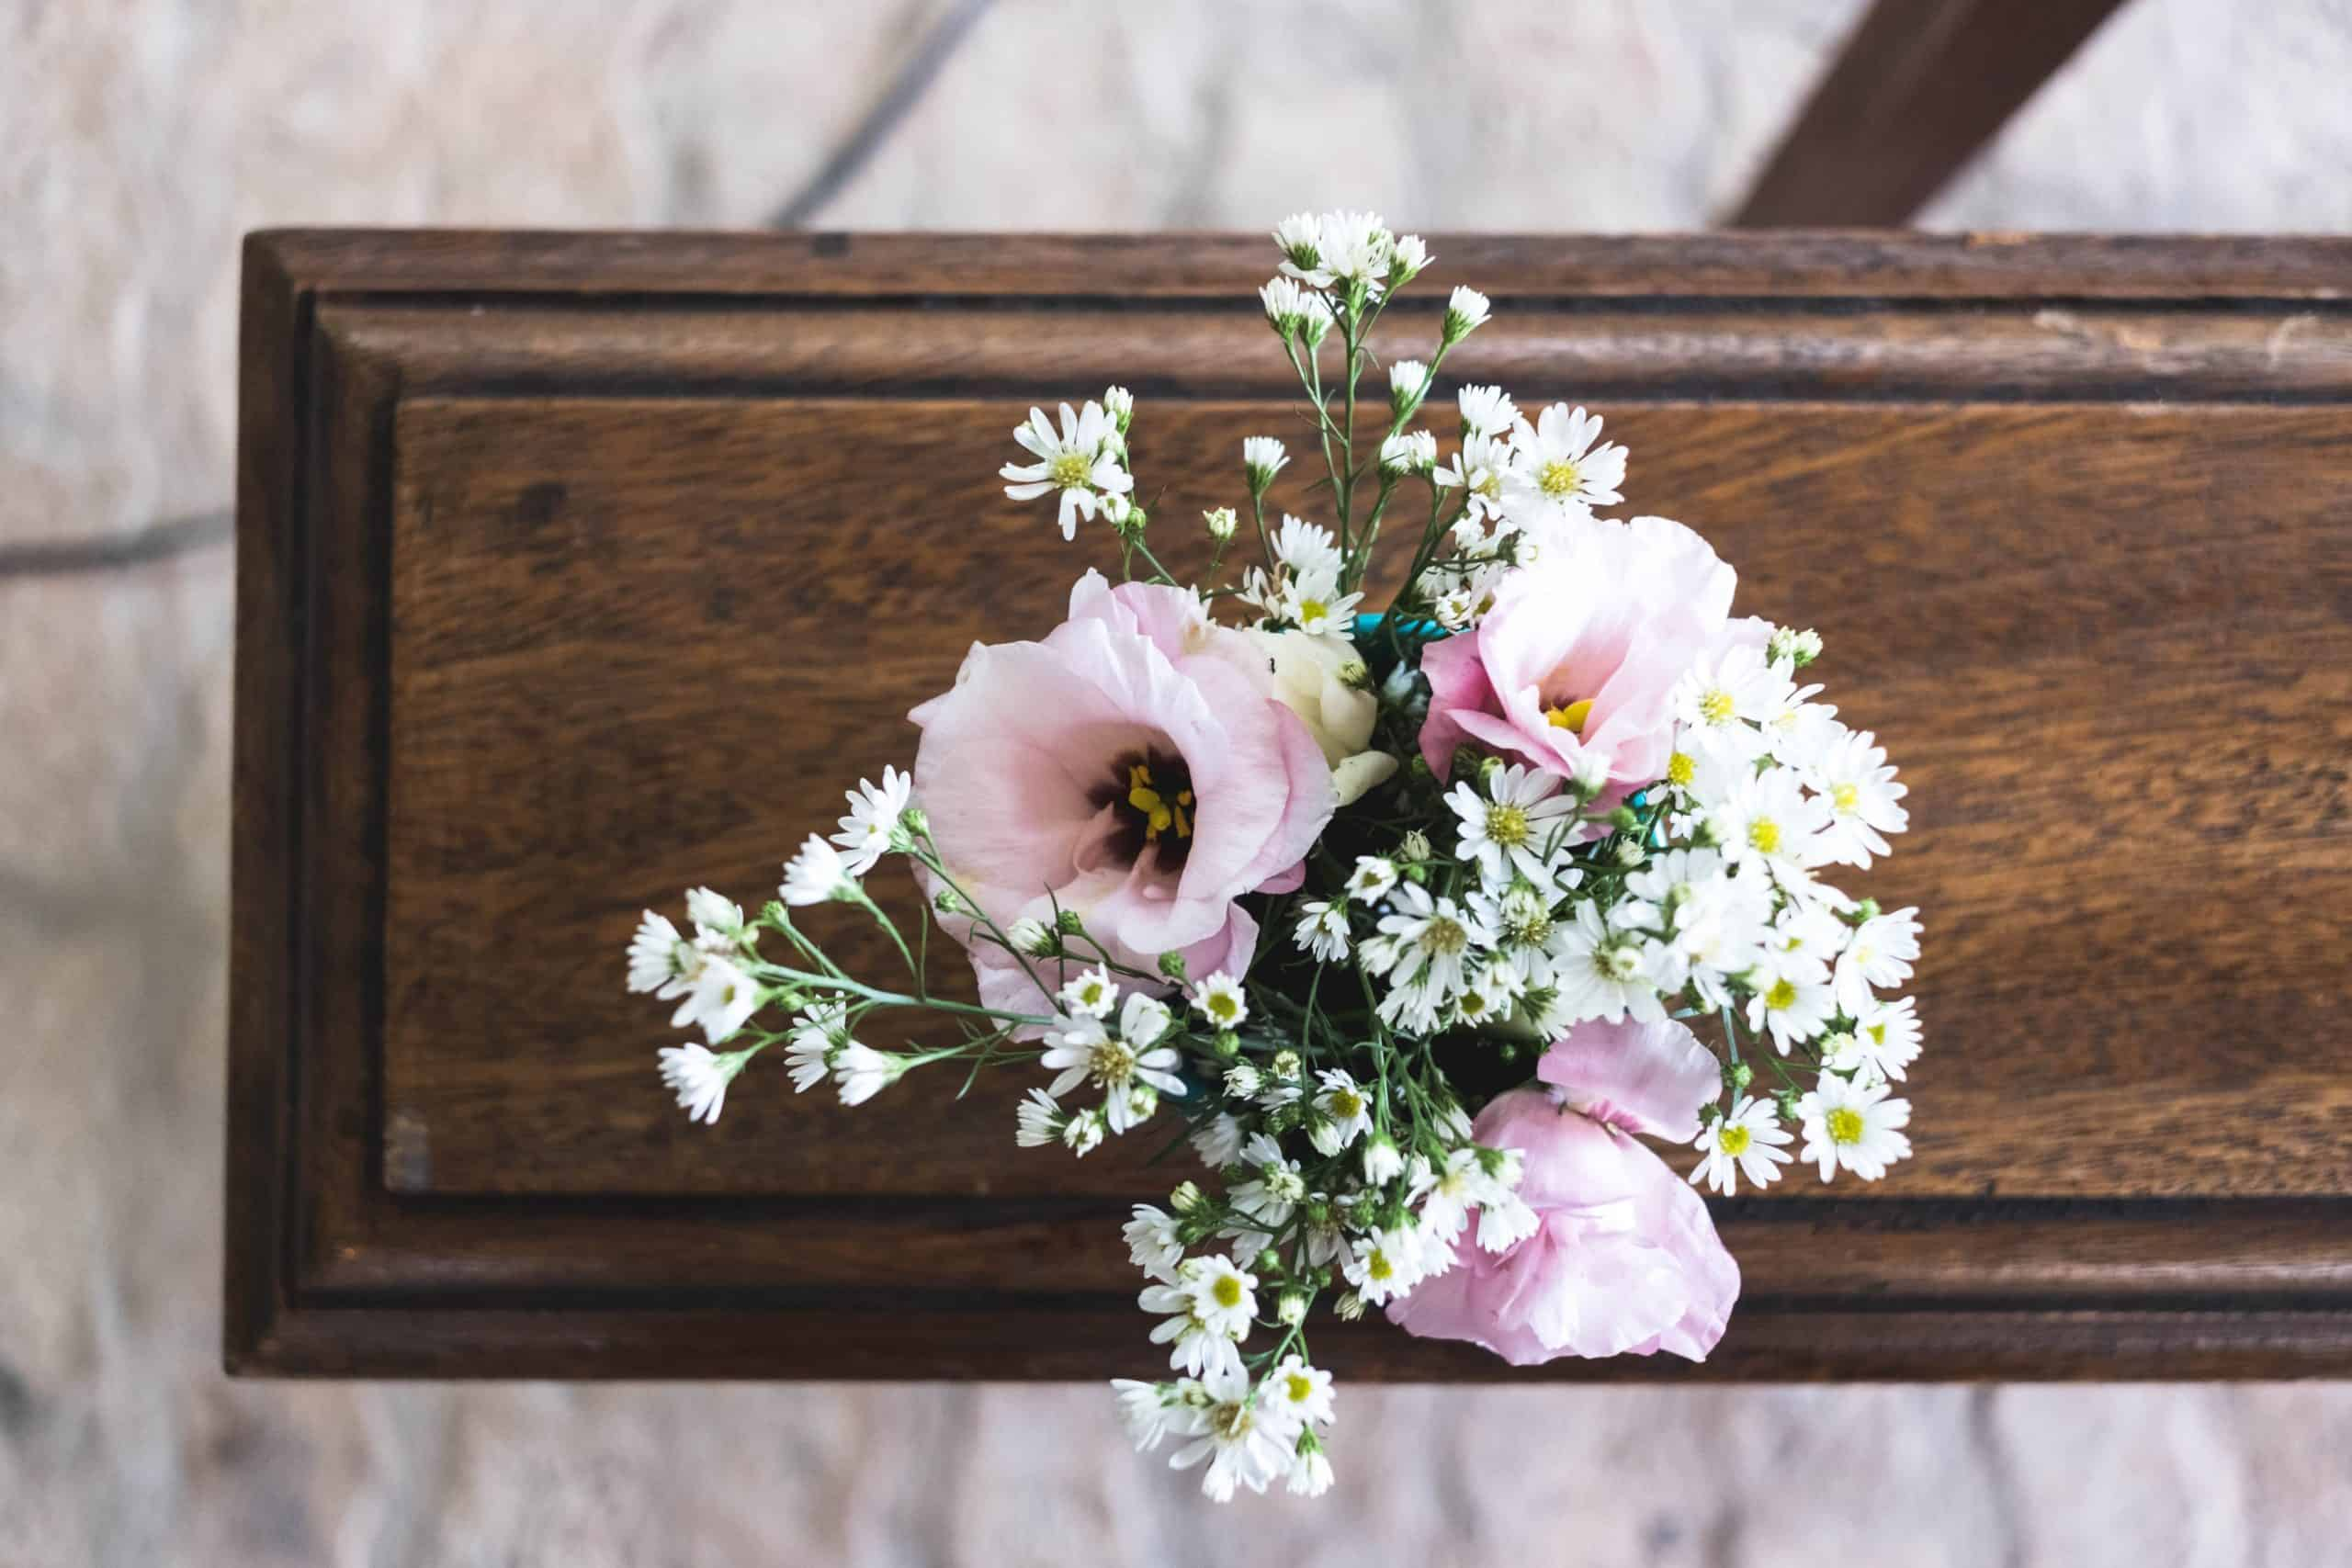 What to Look For When Choosing Flowers For Funeral